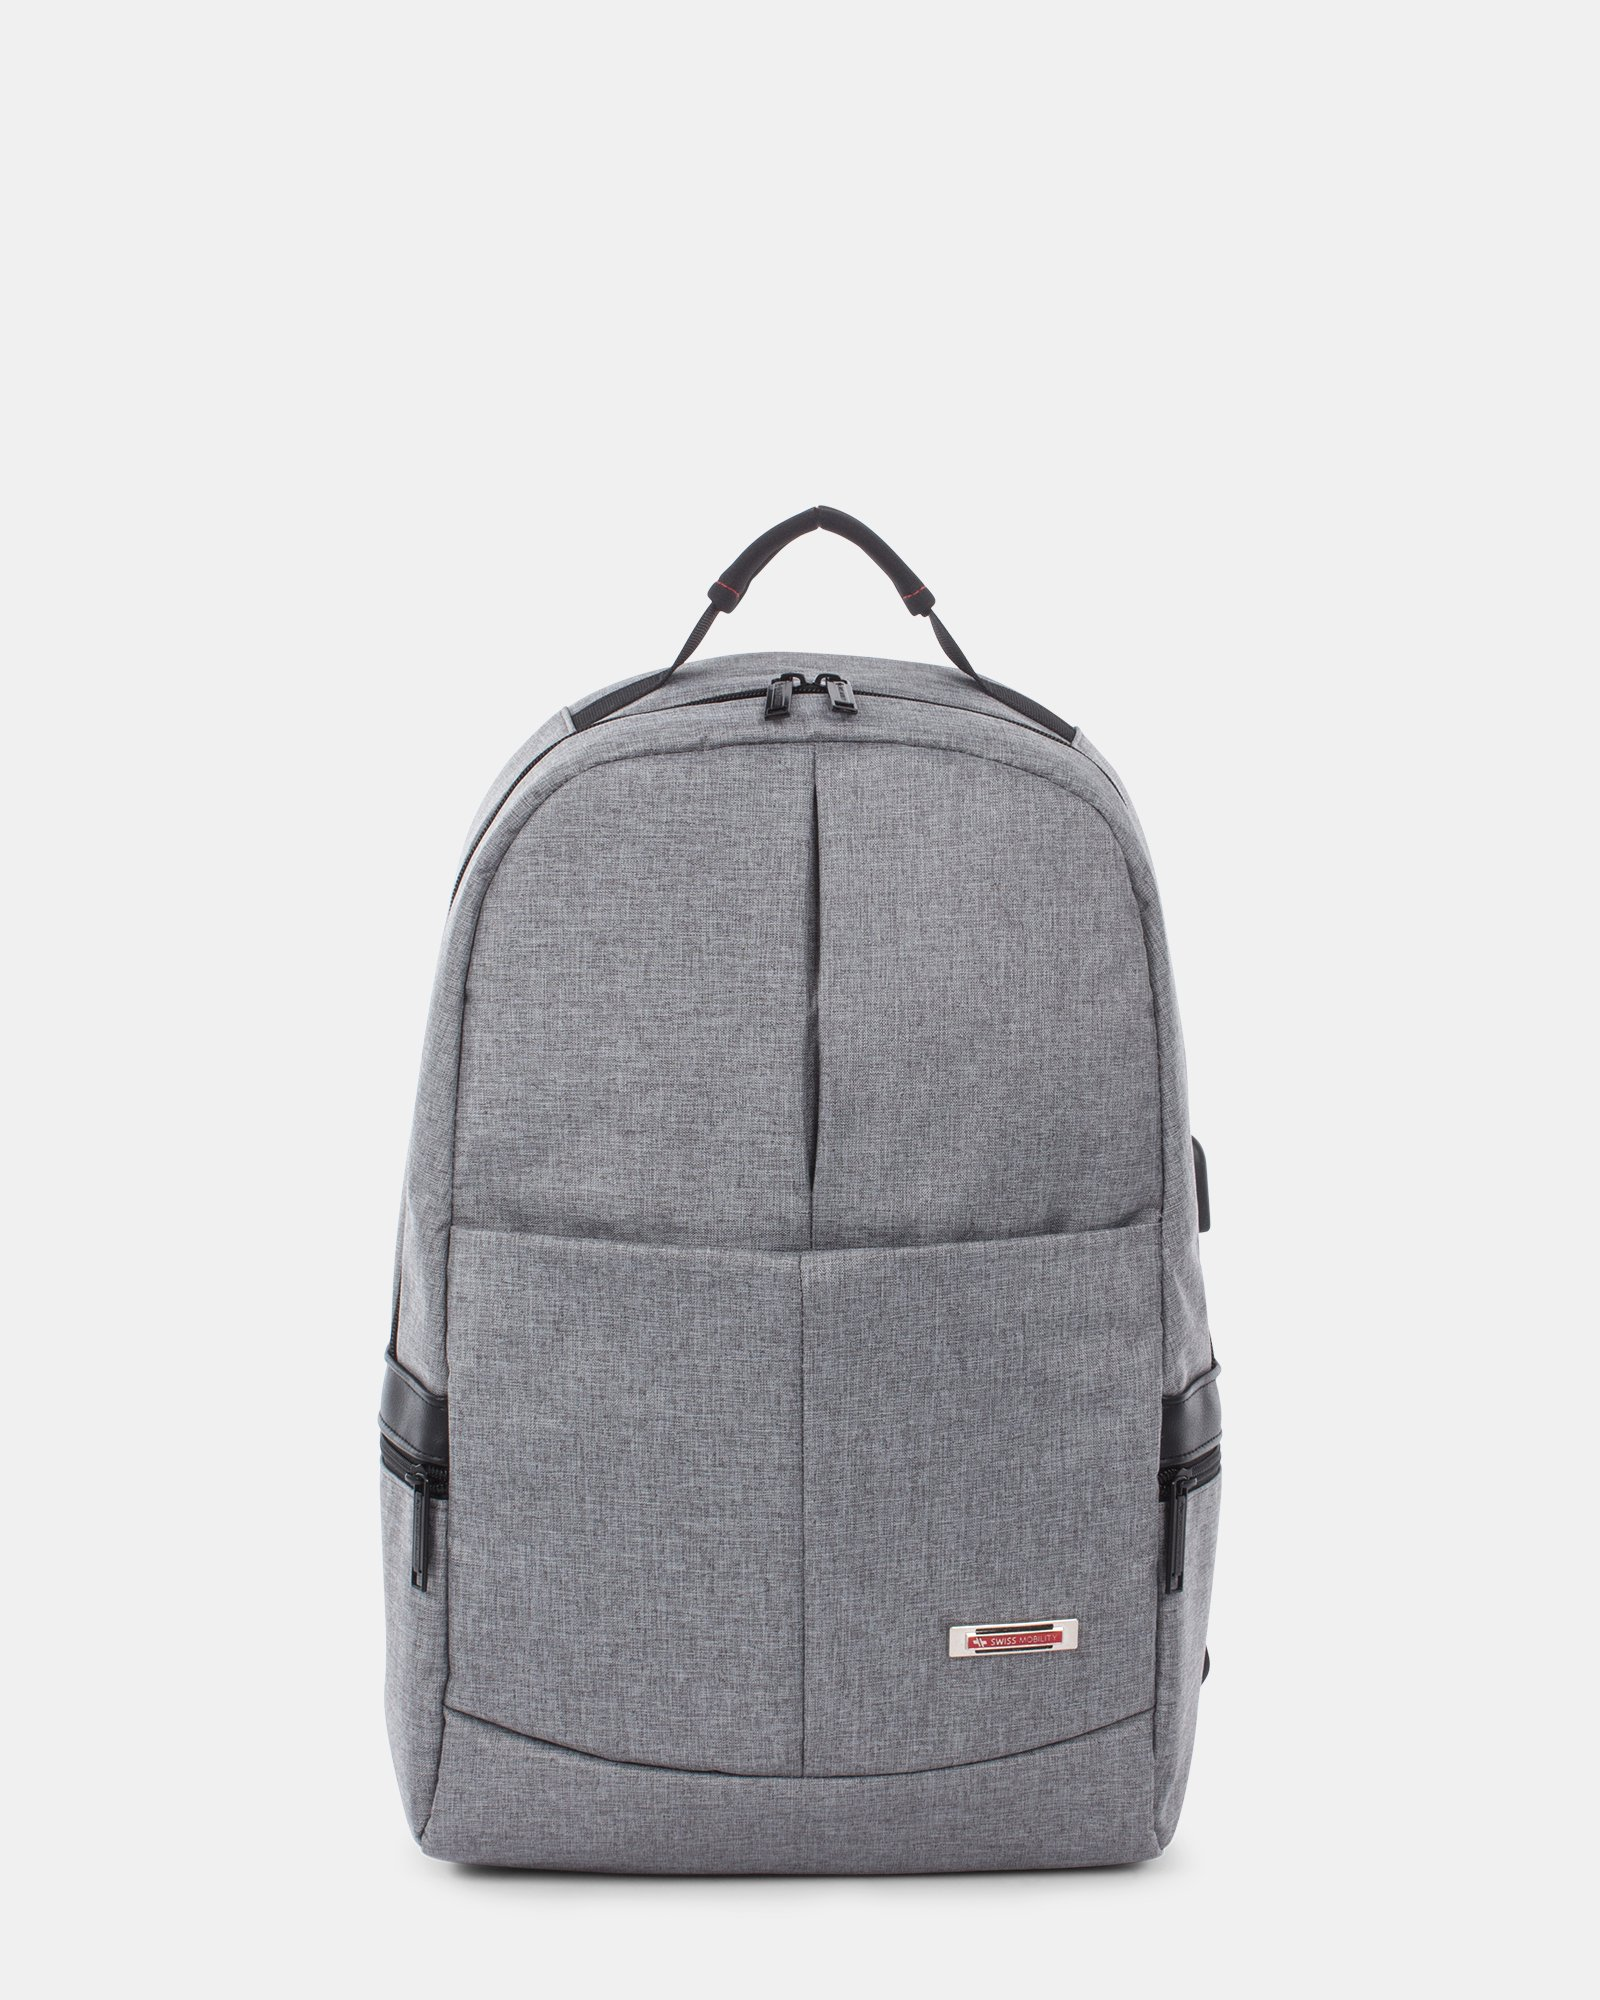 Sterling - Silm Backpack with USB port - Grey - Swiss Mobility - Zoom